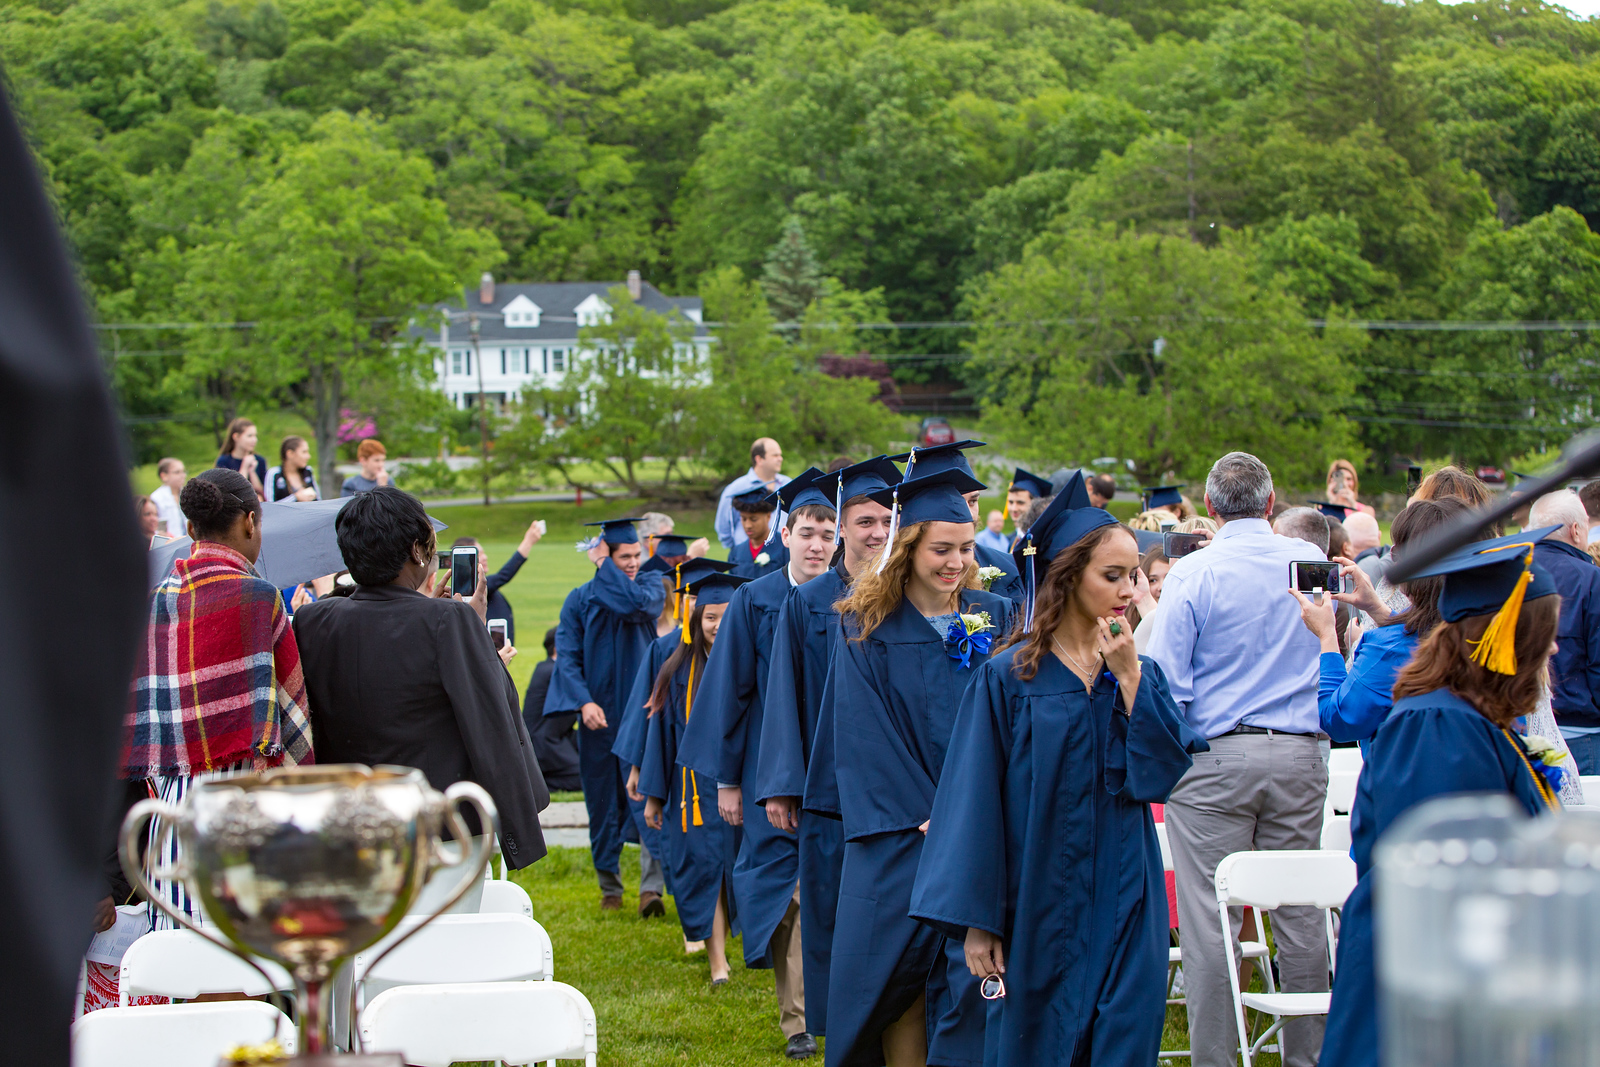 Seniors enter the graduation venue with Spy Rock House in the background